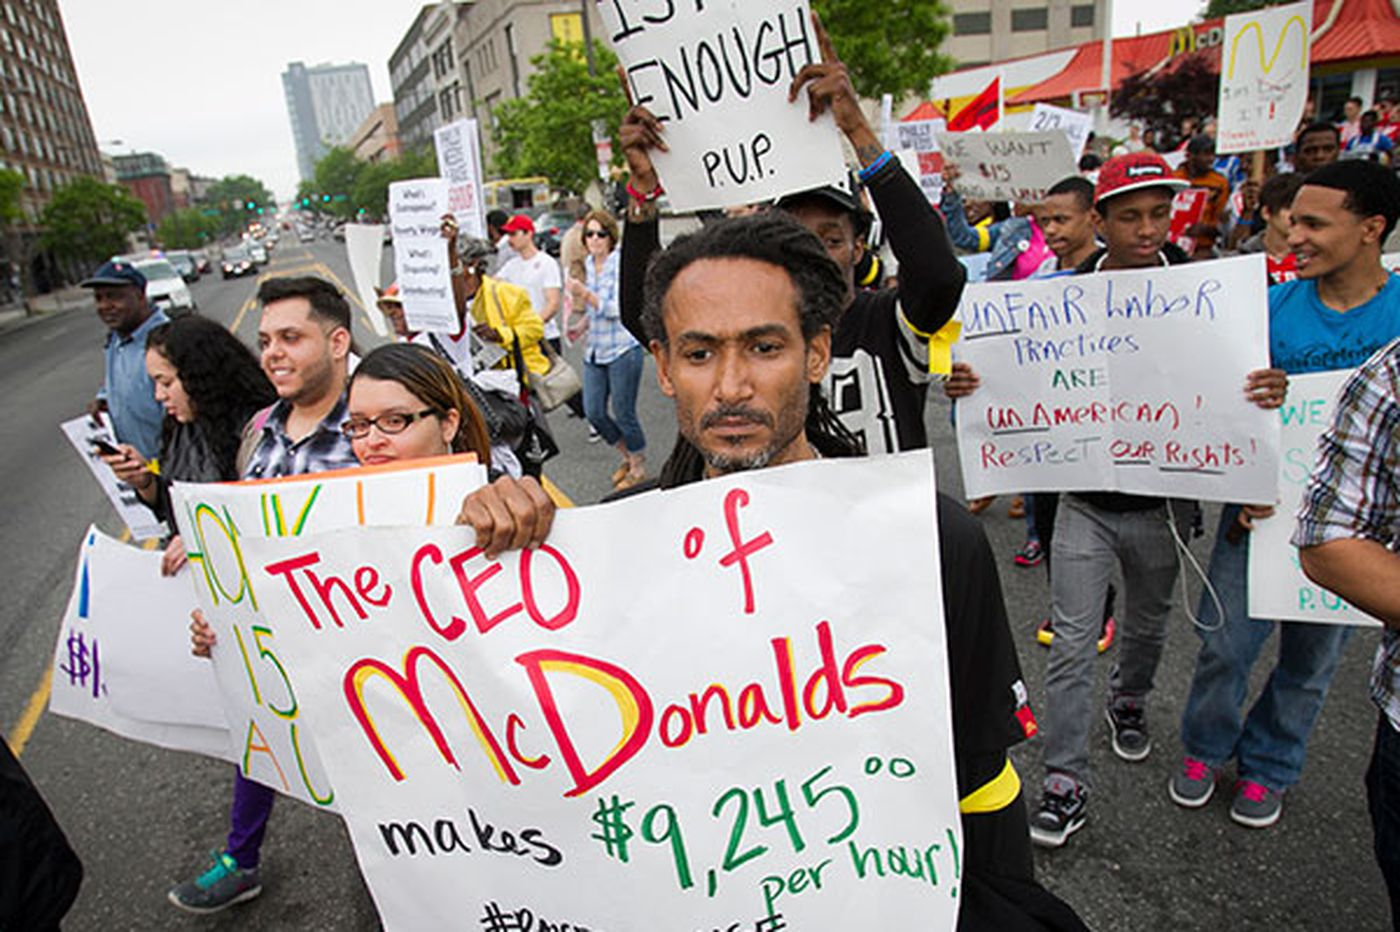 Fast-food workers strike, protest 'poverty pay'